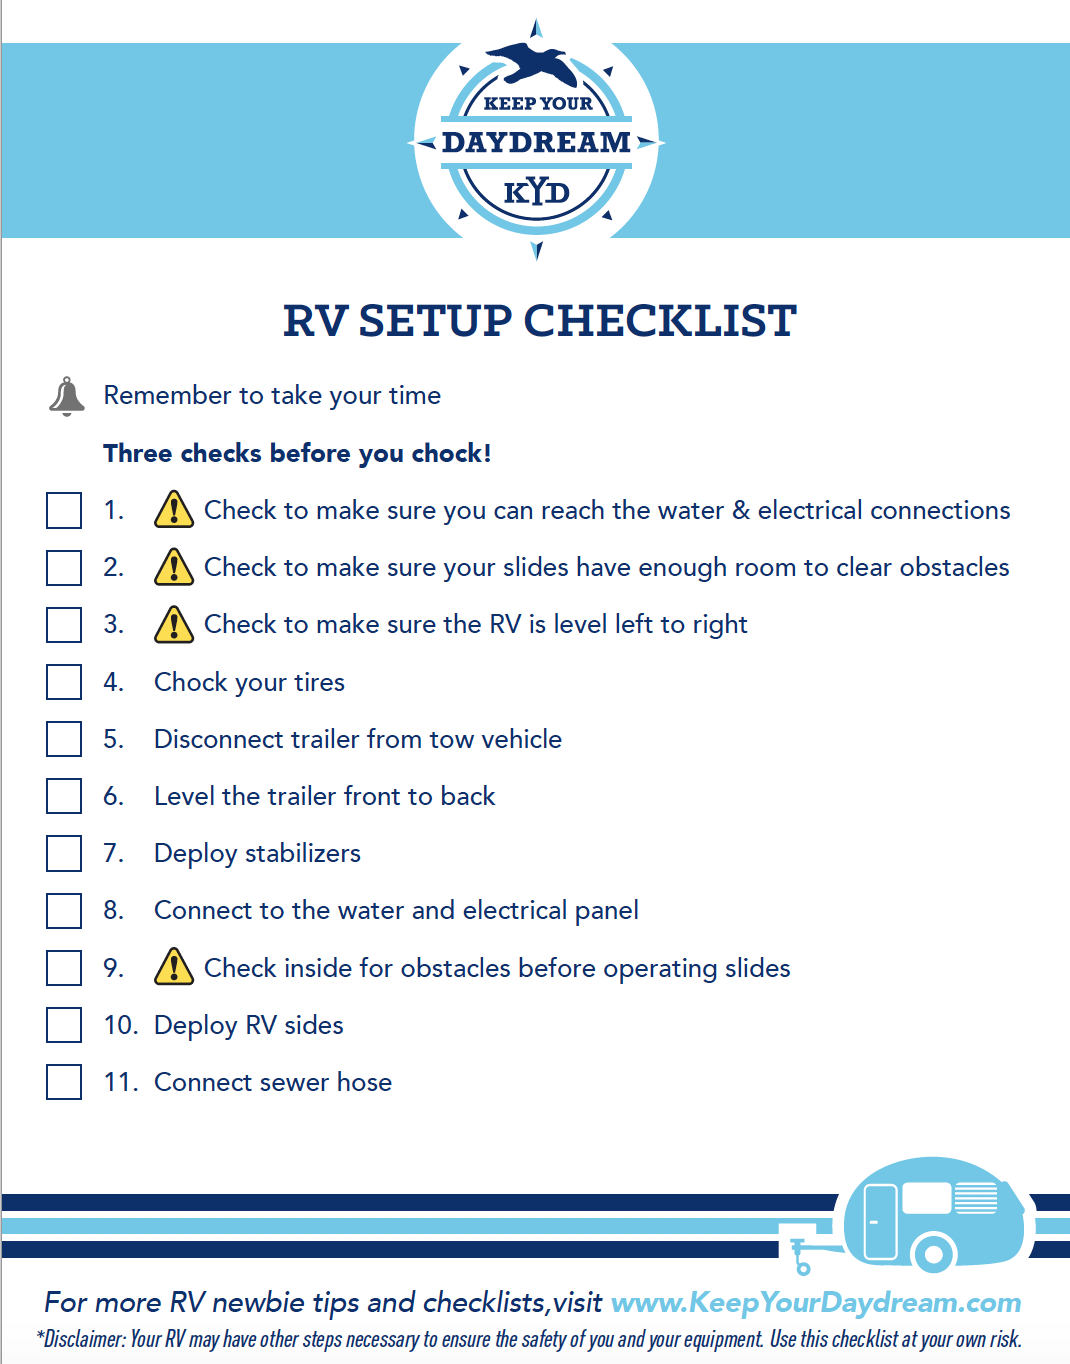 It is a picture of Handy Printable Rv Setup Checklist